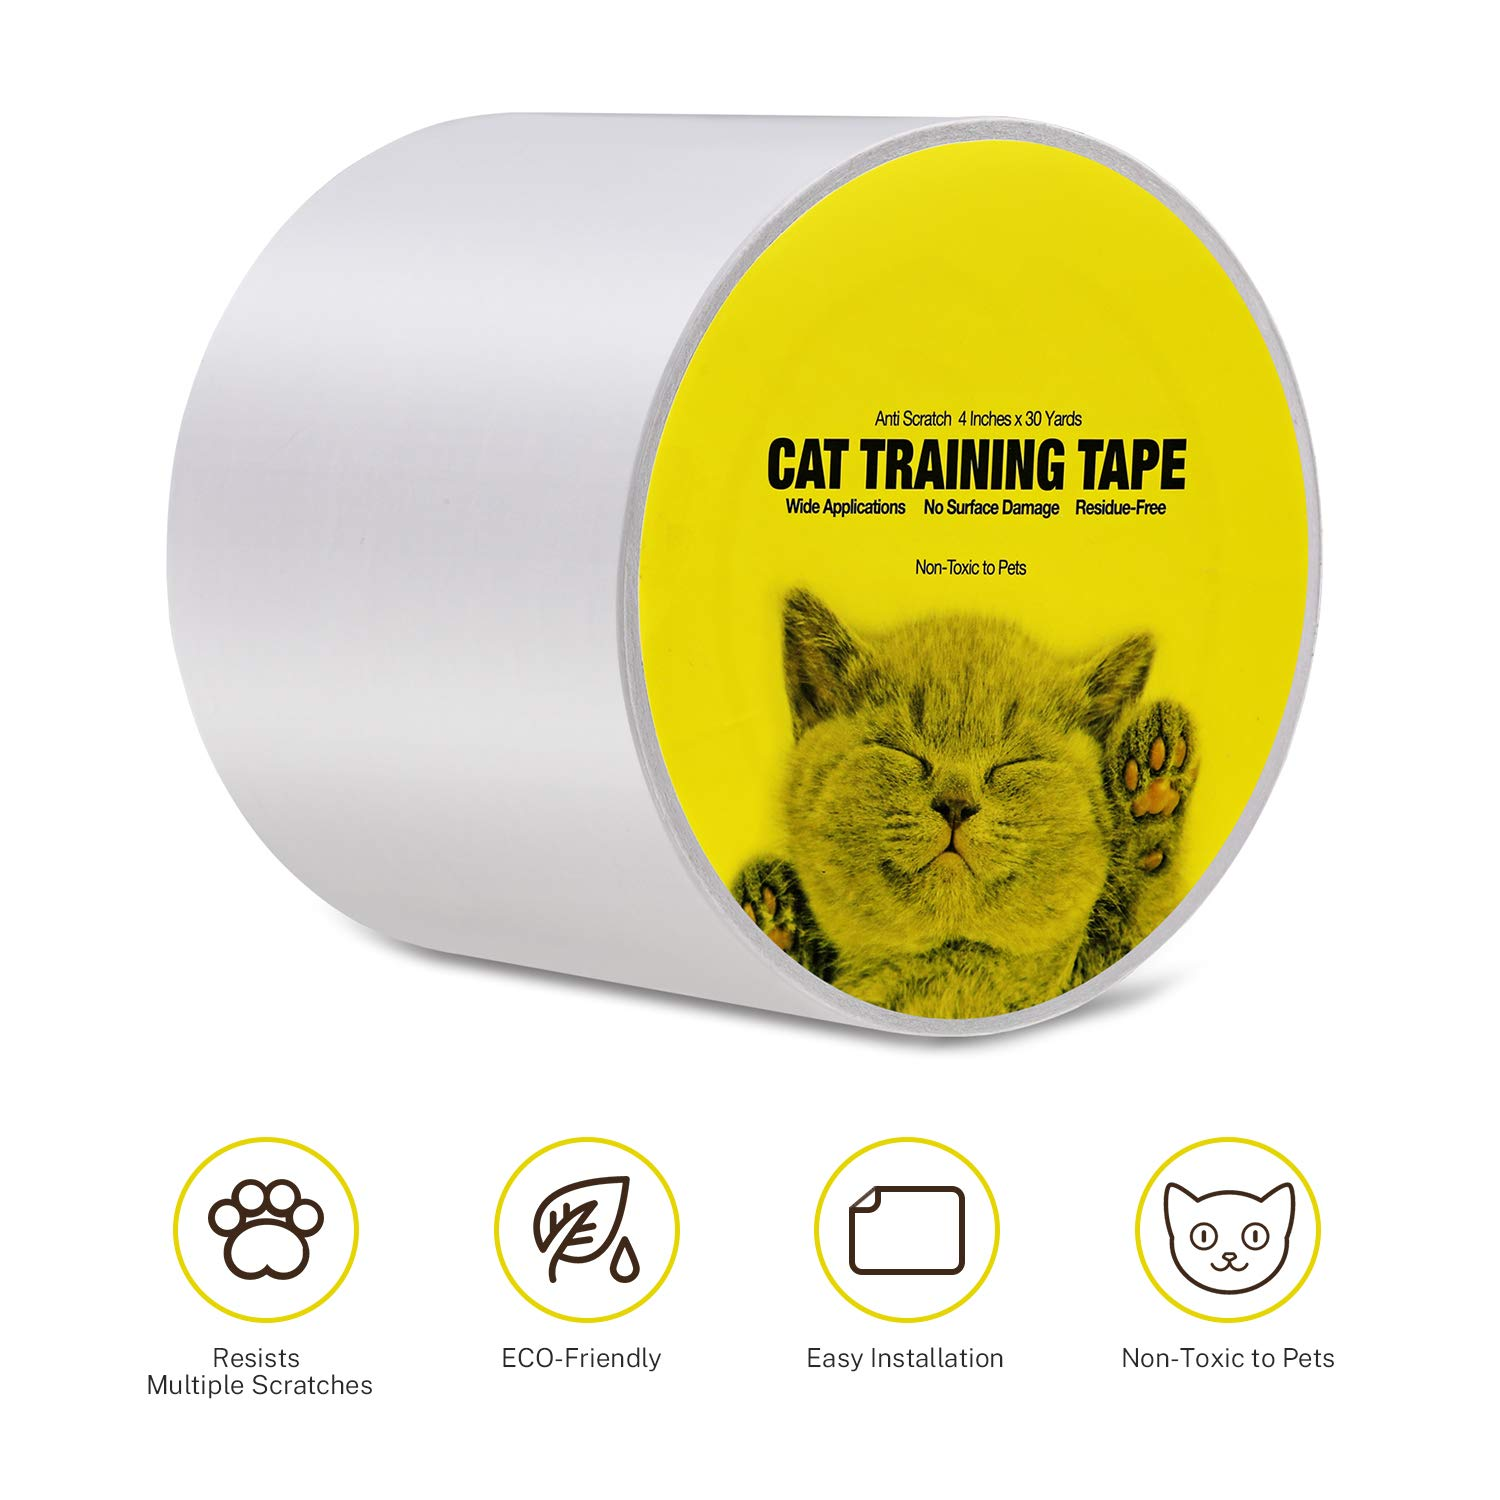 Kohree Anti Cat Scratch Tapes, 33% Wider Furniture Protector Cat Training Tape from Cats, Anti Scratch Pads for Furniture,Curtain, Carpet, 4 Inches x 30 Yards